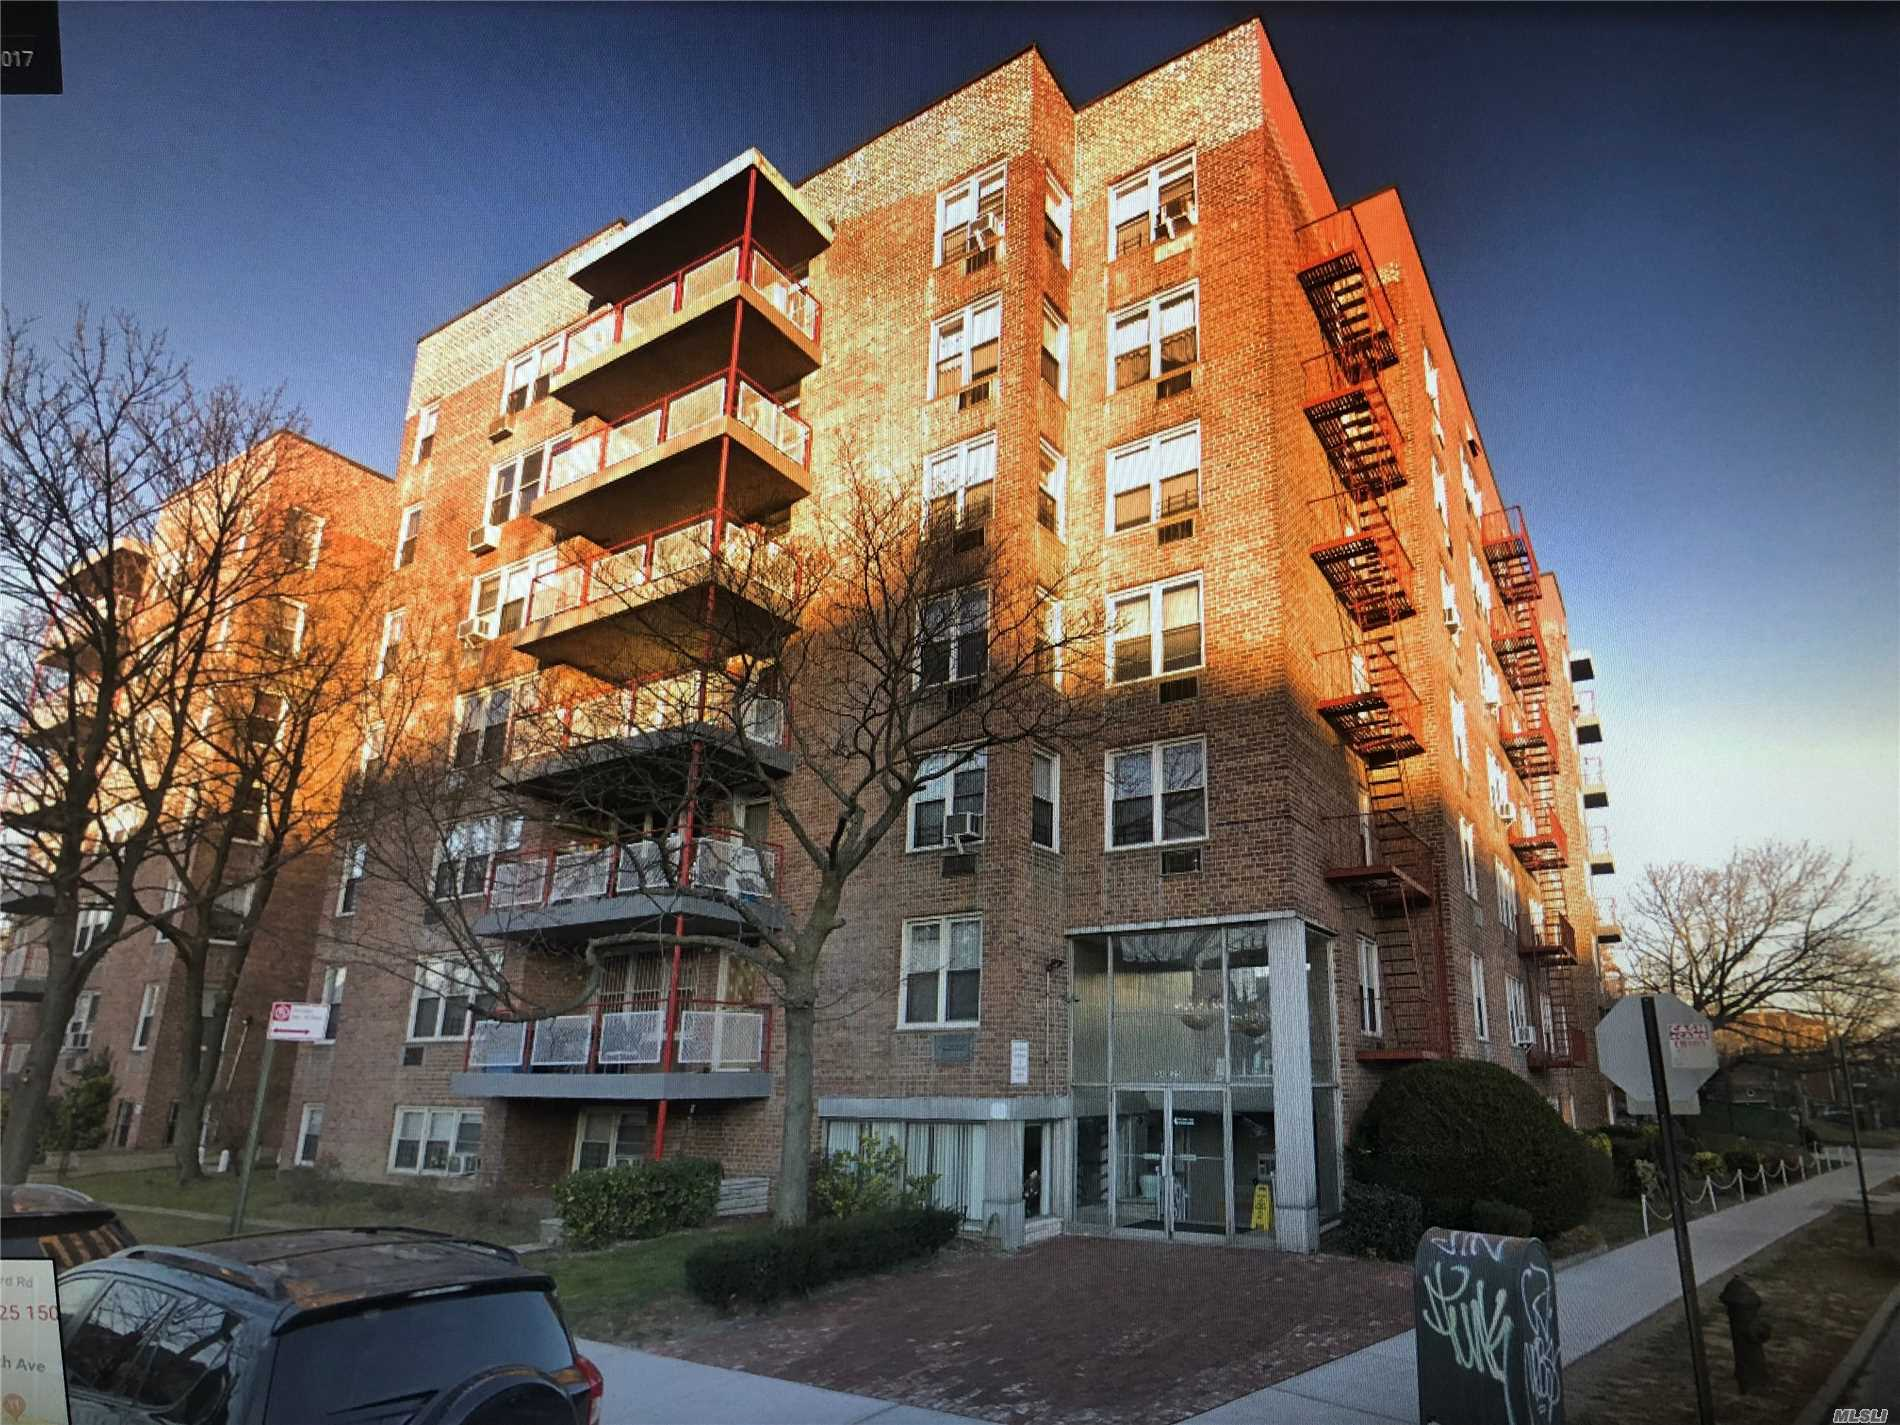 Location, Location, Location! This Junior 4 coop is situated in the heart of flushing.  Mins away to the LIRR Murray Hill Station. 1 Block away to Northern Blvd which has the Q13, Q28 and the Q15 Bus Line, Supermarkets, Restaurants and more. Sale may be subject to term & conditions of an offering plan.